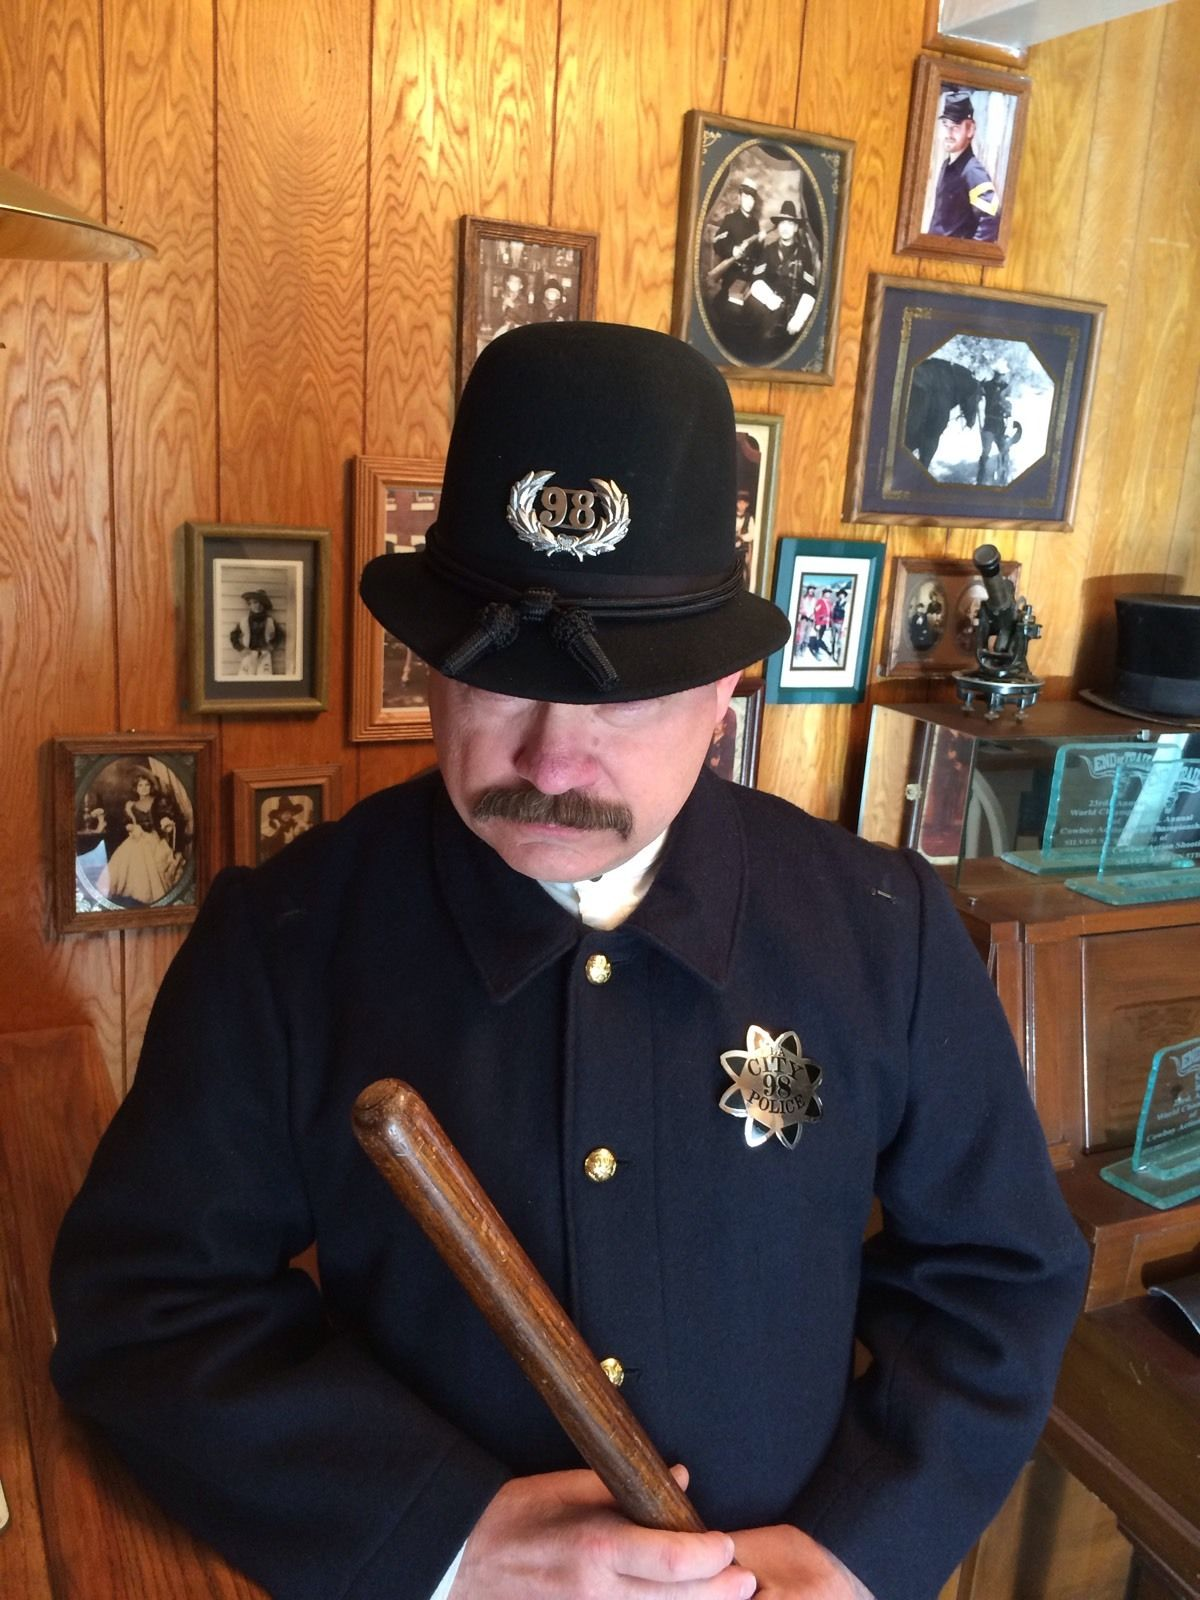 BUCK MODELING THE 1890 LAPD HELMET